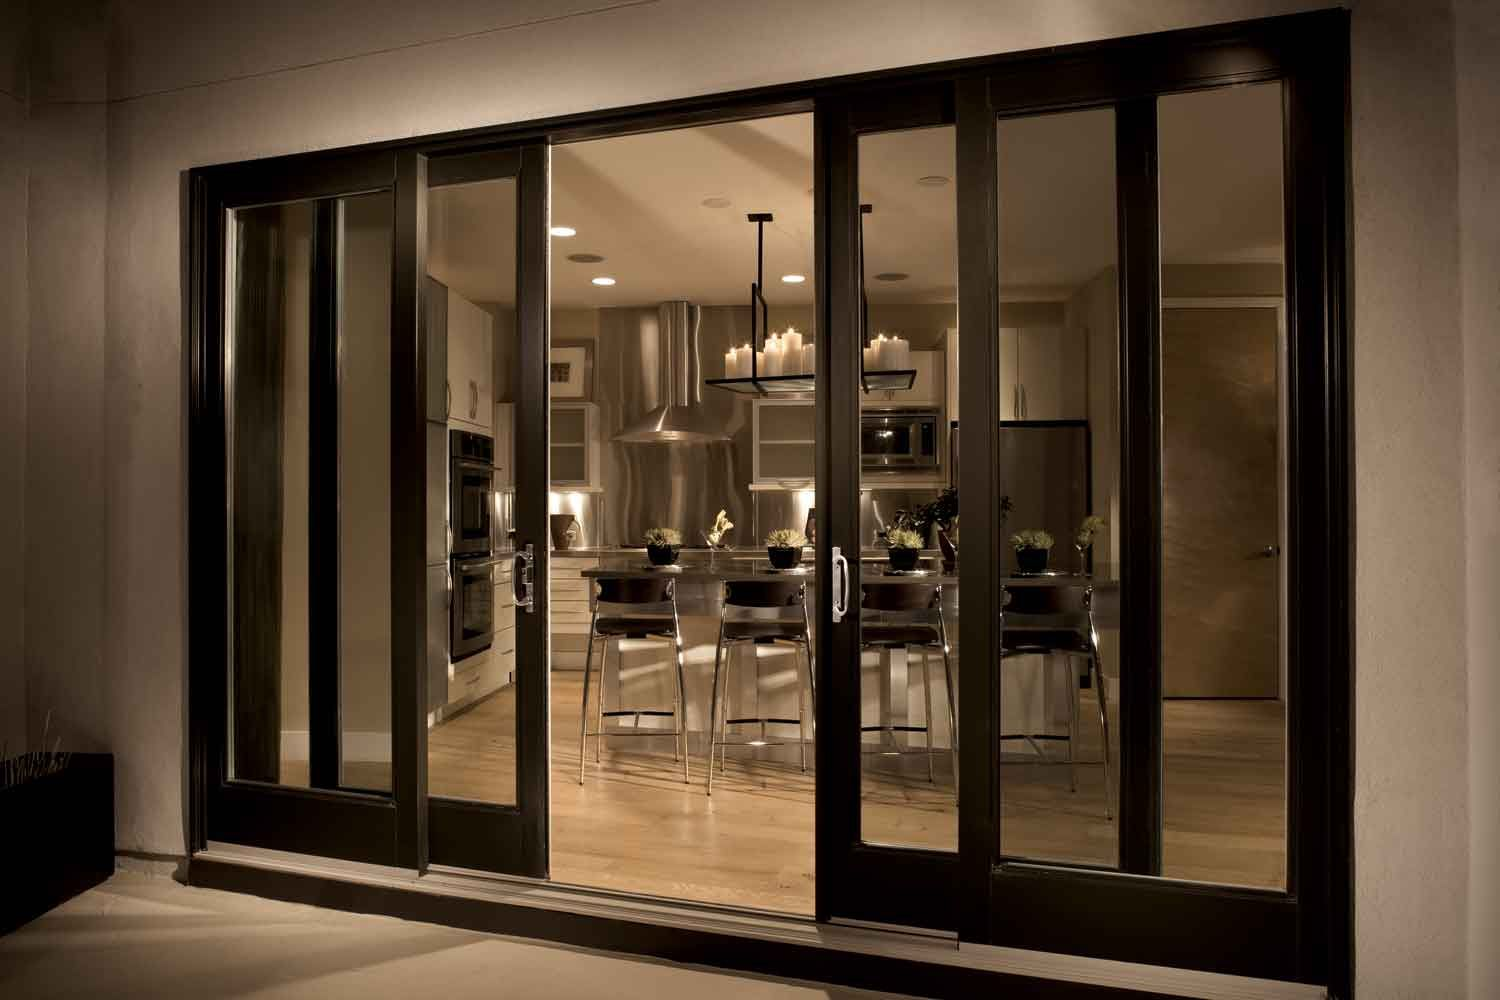 fiberglass sliding patio doors 2 3 or 4 panel configurations